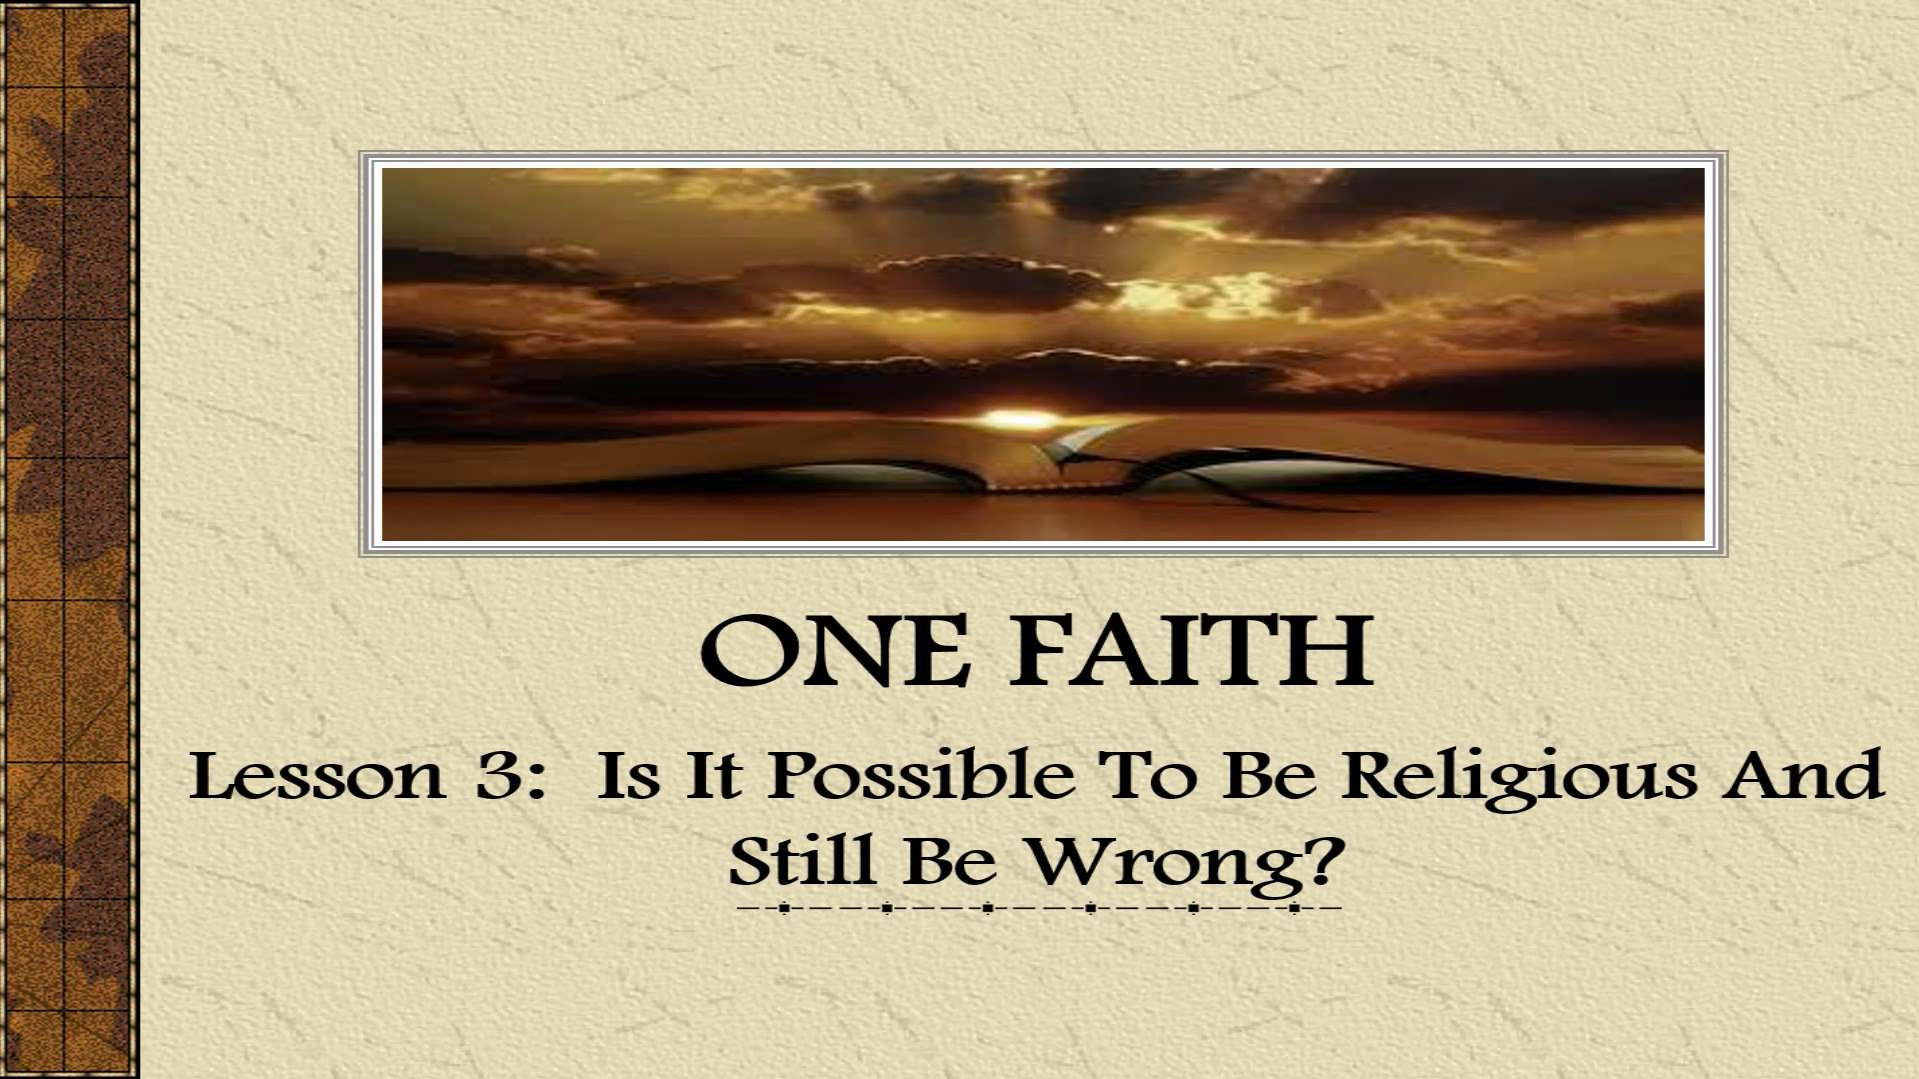 One Faith (Lesson 3:  Is It Possible To Be Religious And Still Be Wrong?)